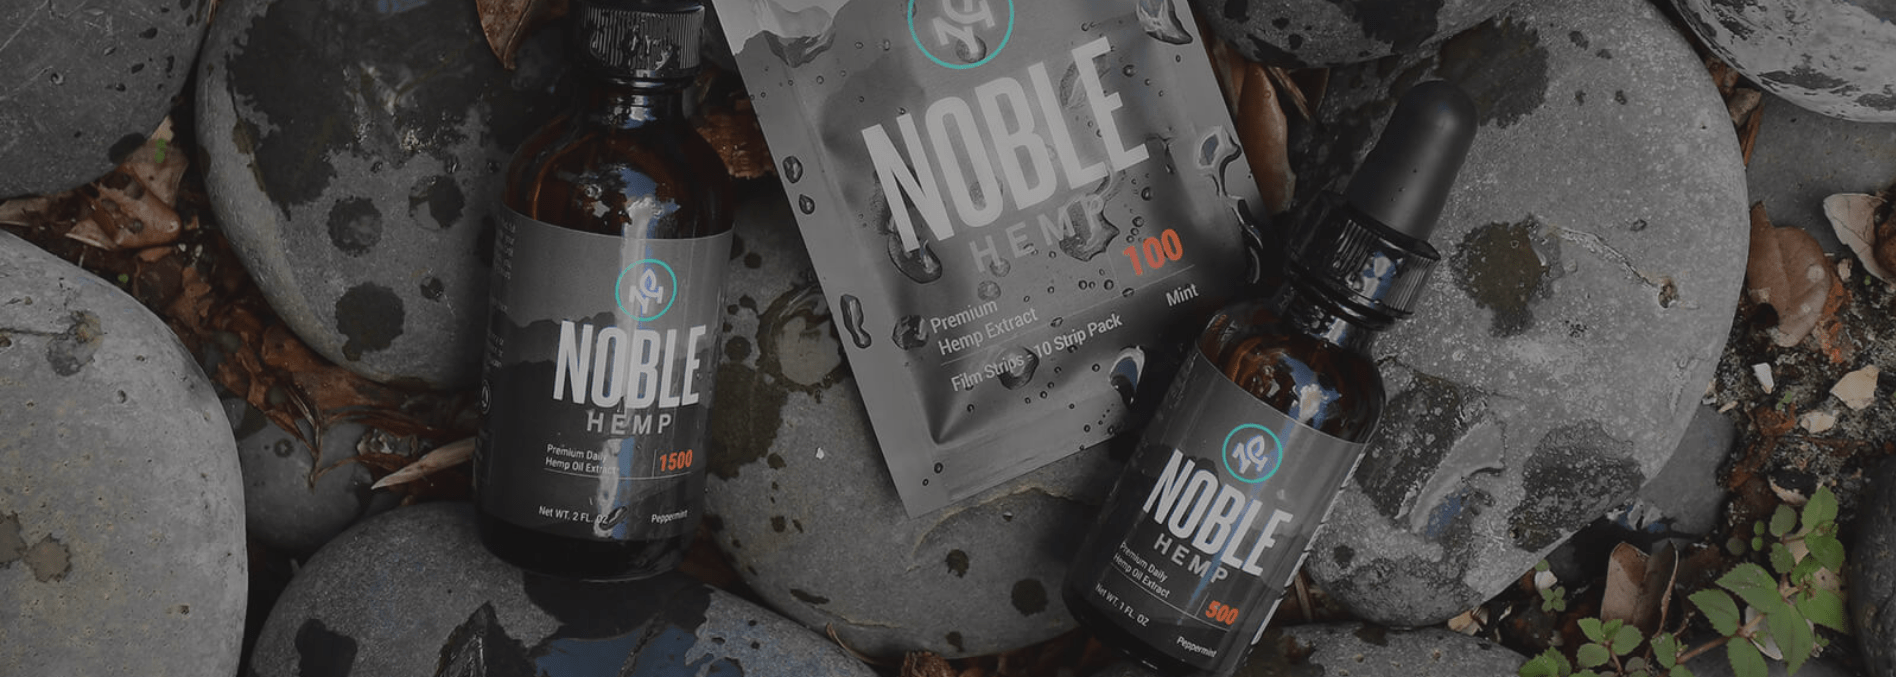 Noble Hemp CBD Coupon Code Our Premium Products